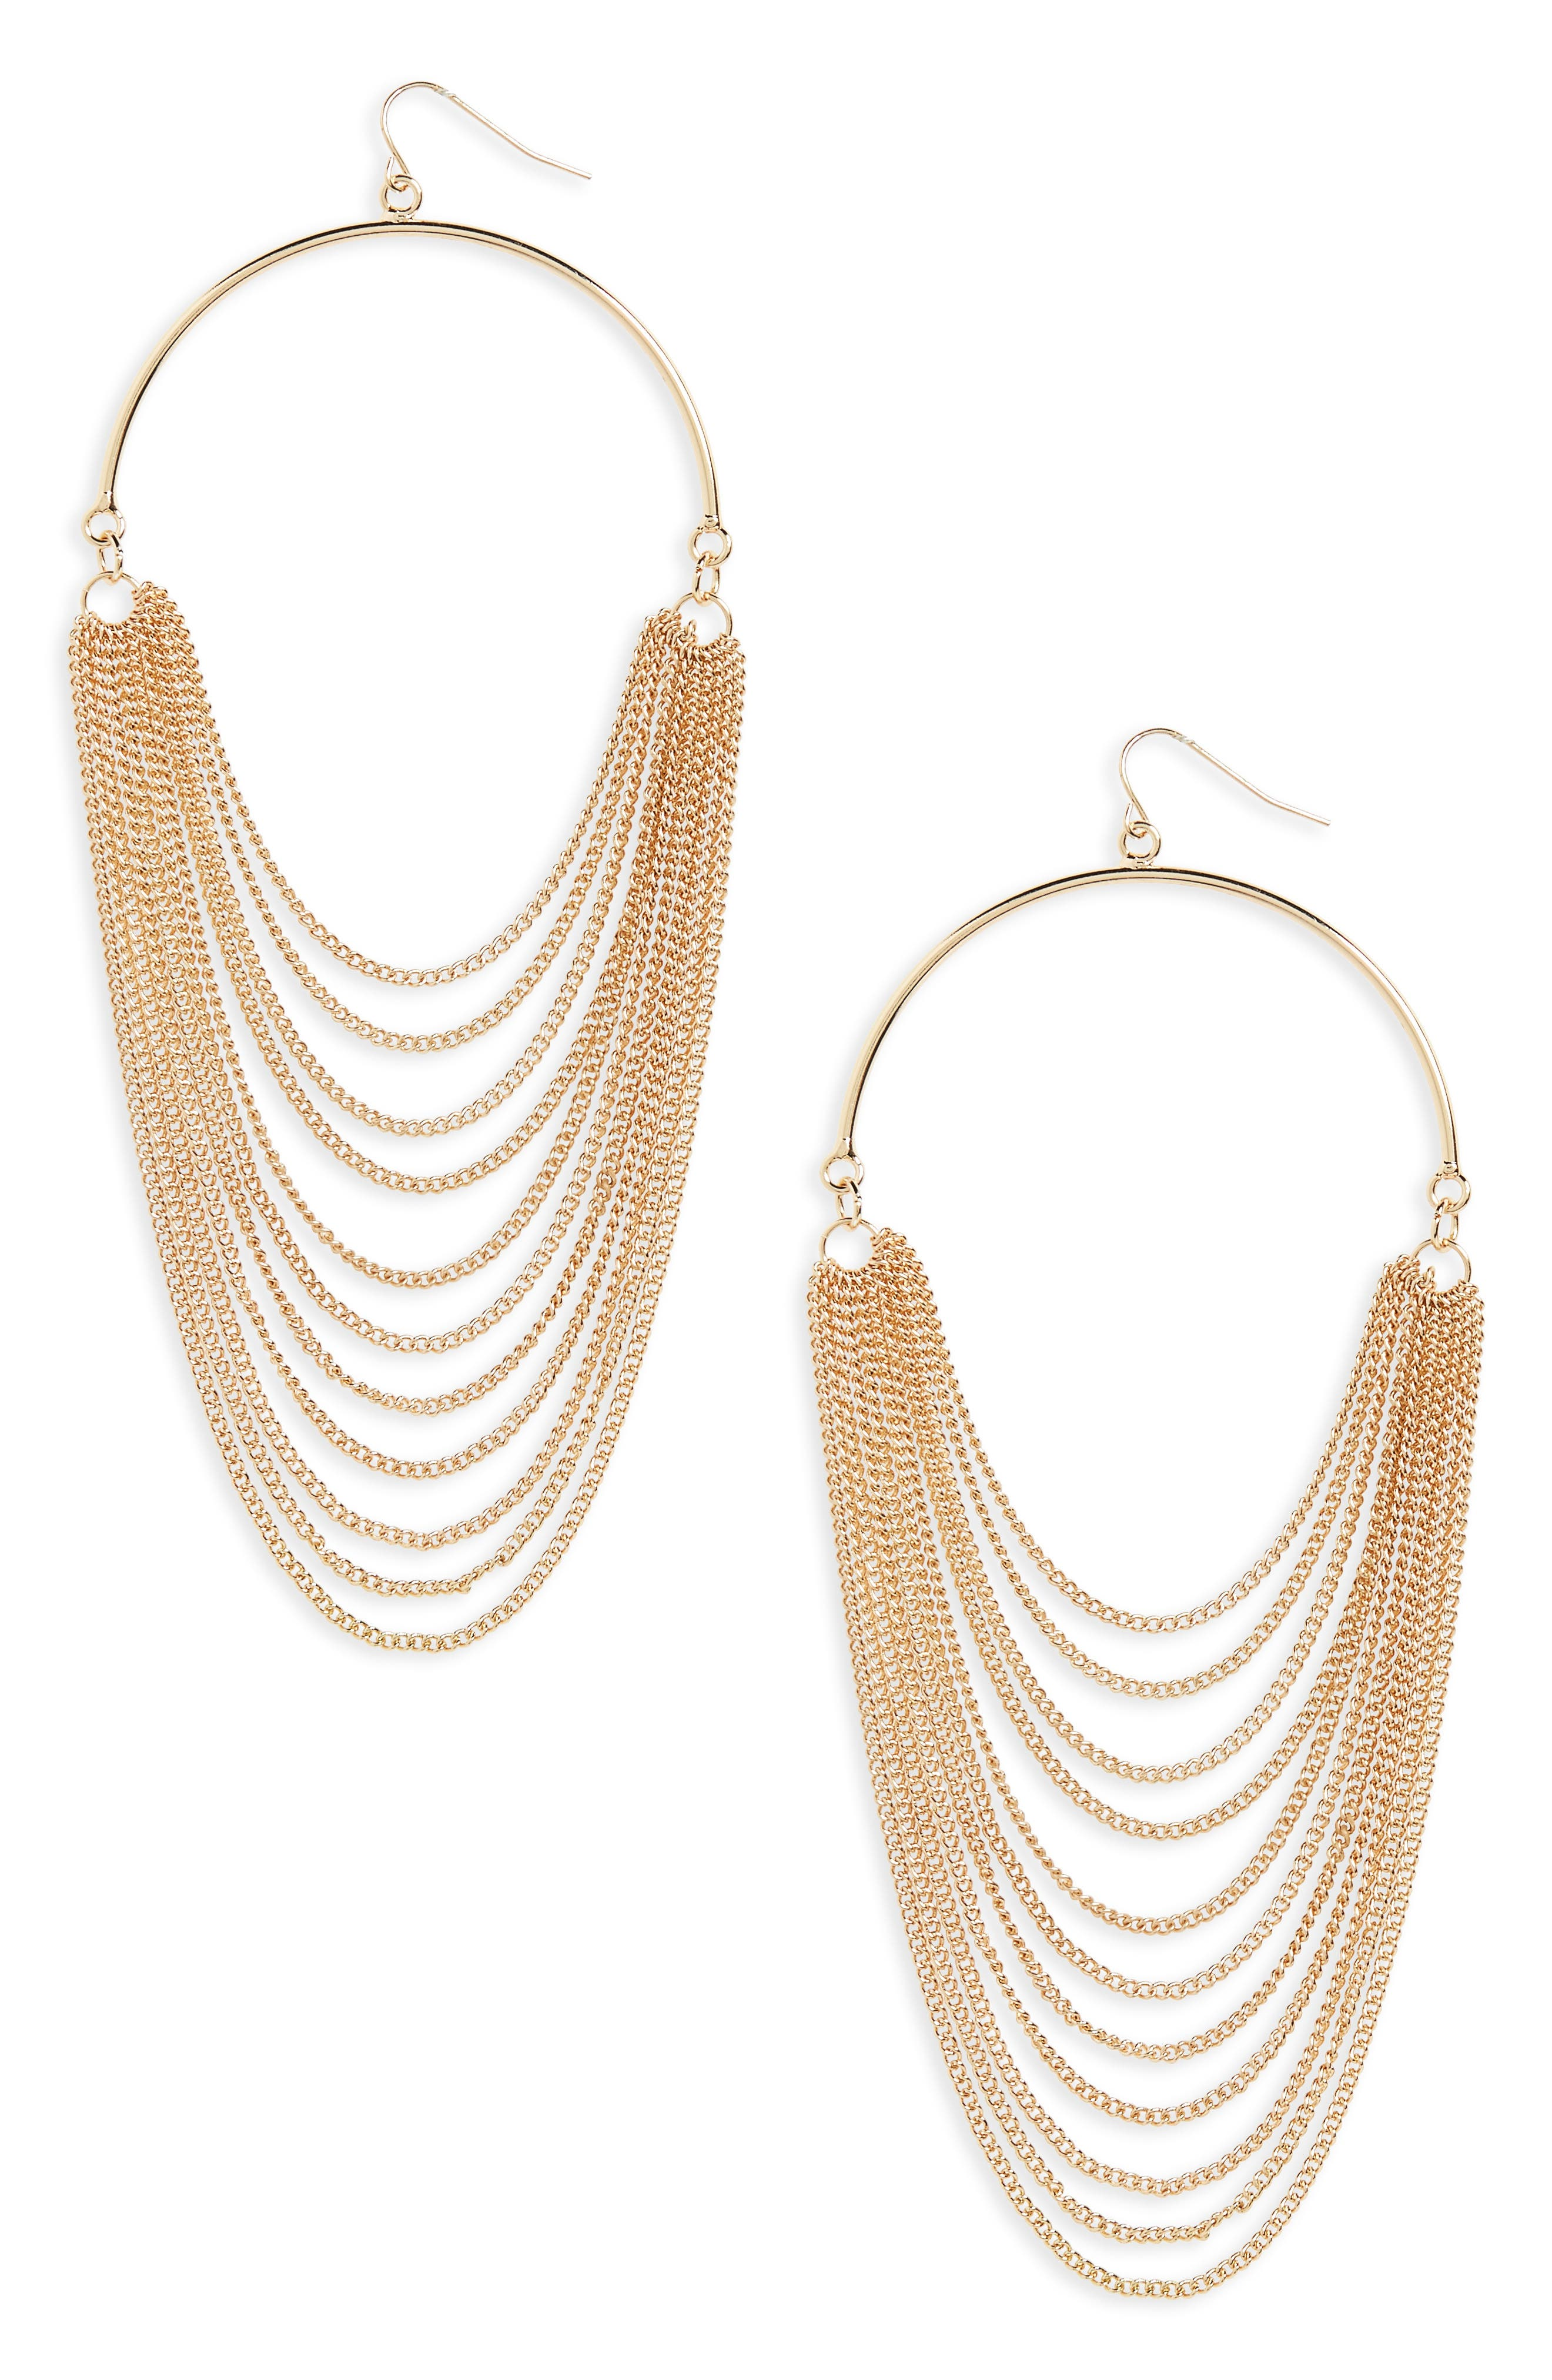 Layered Chain Hoop Earrings,                         Main,                         color, Gold